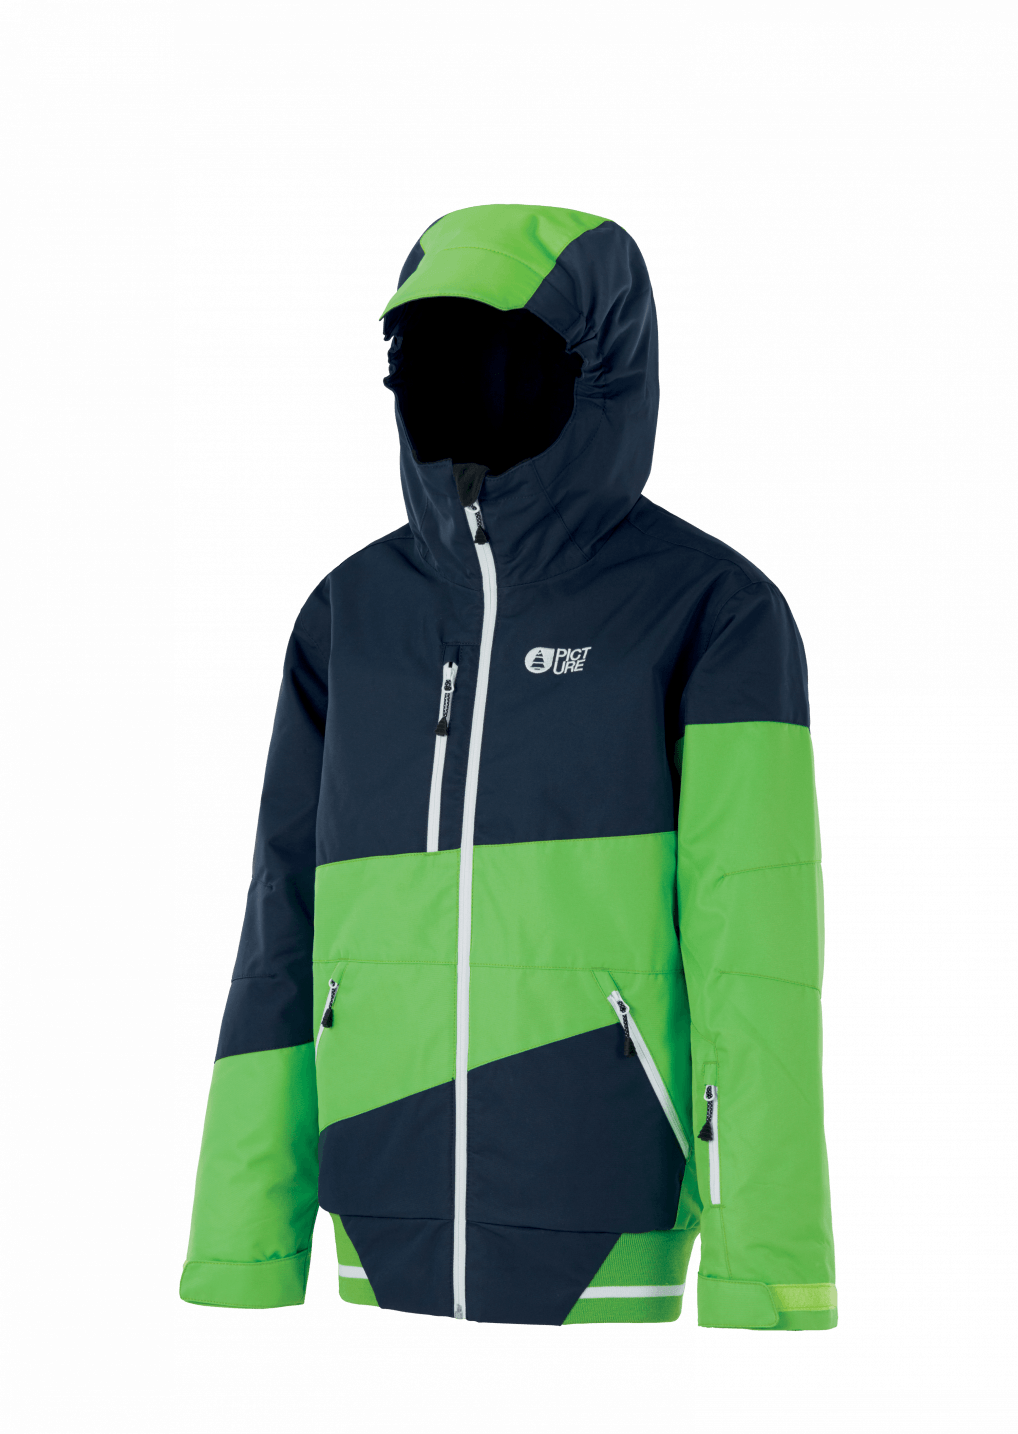 Picture SLOPE Jacket 2019-20